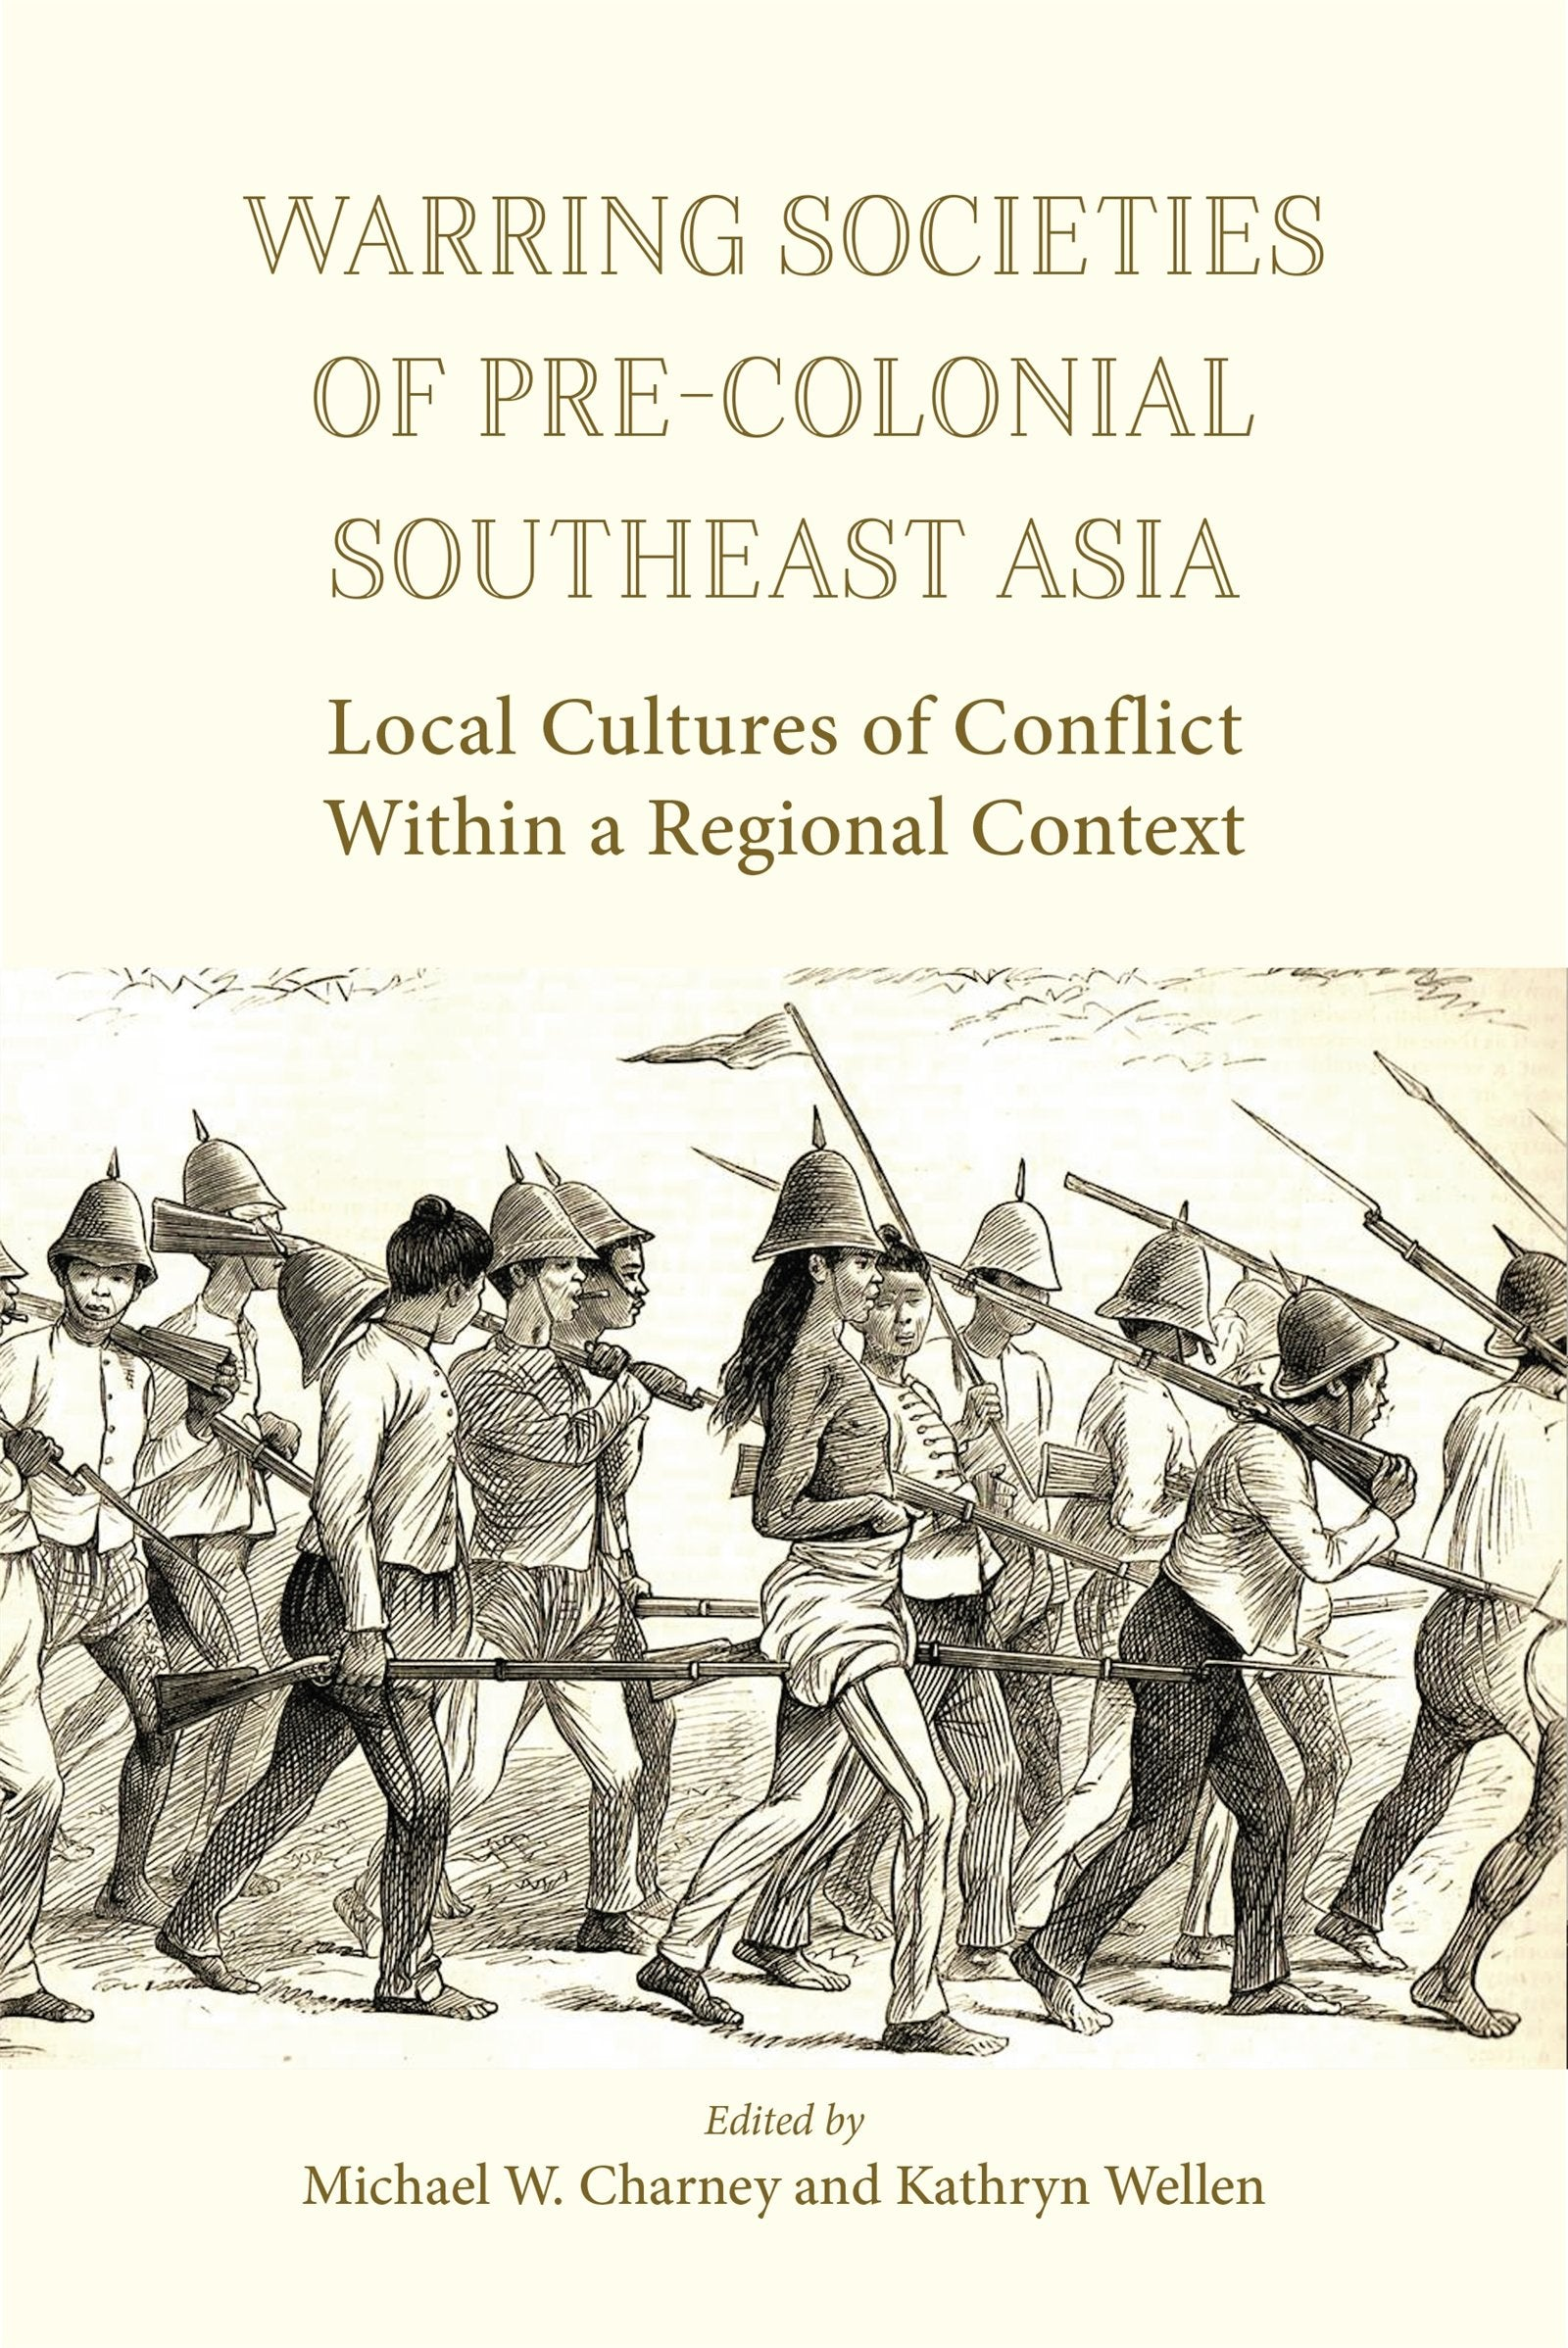 Gainesville Luxury Designer Home: Warring Societies Of Pre-colonial Southeast Asia: Local